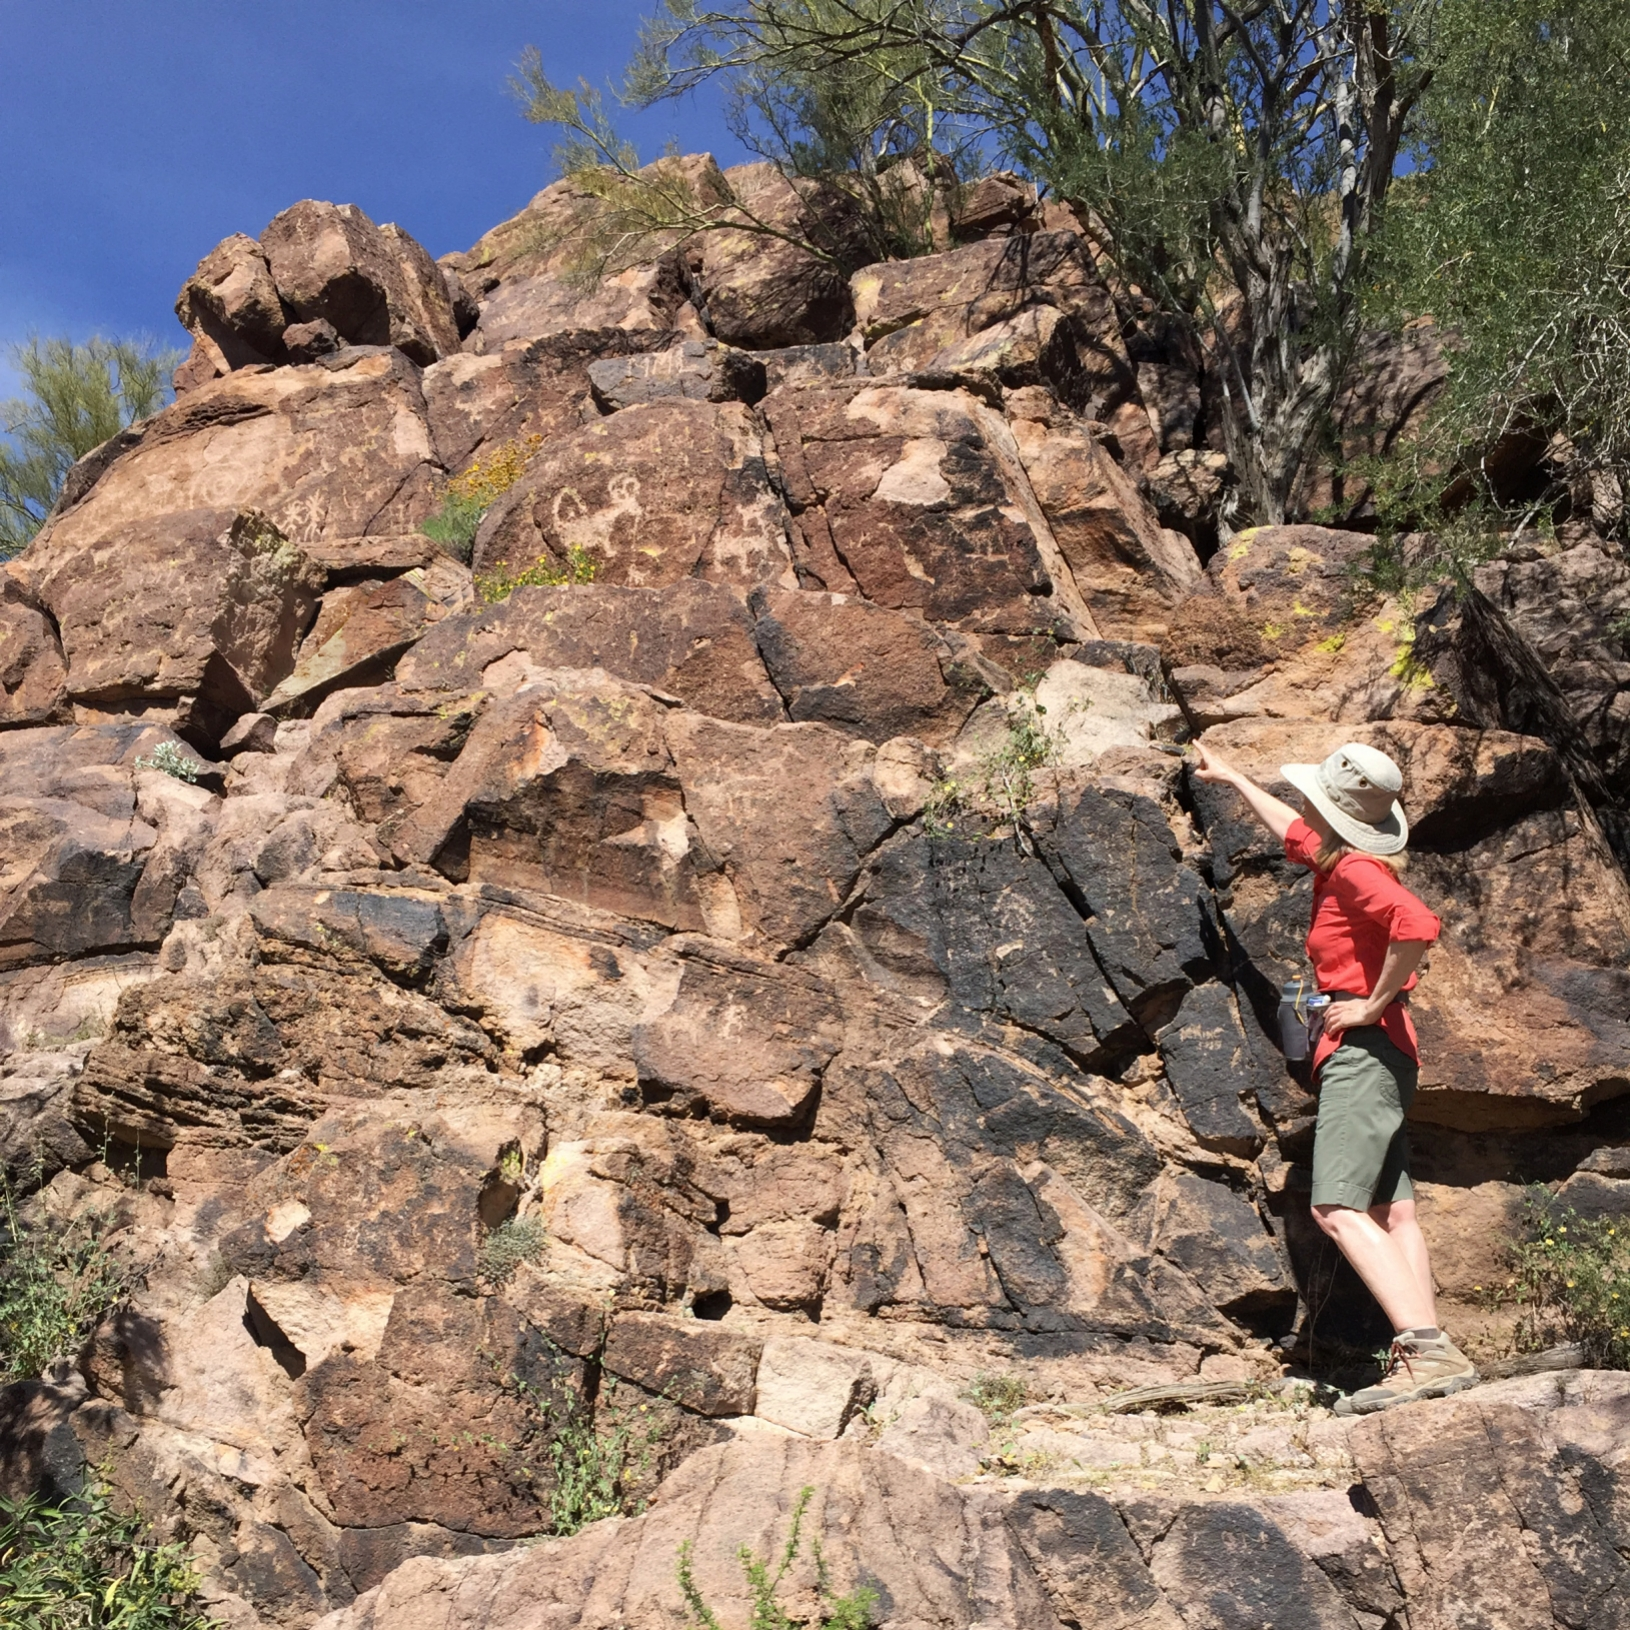 Hiker pointing to ancient petroglyphs etched on canyon walls near Tucson, AZ